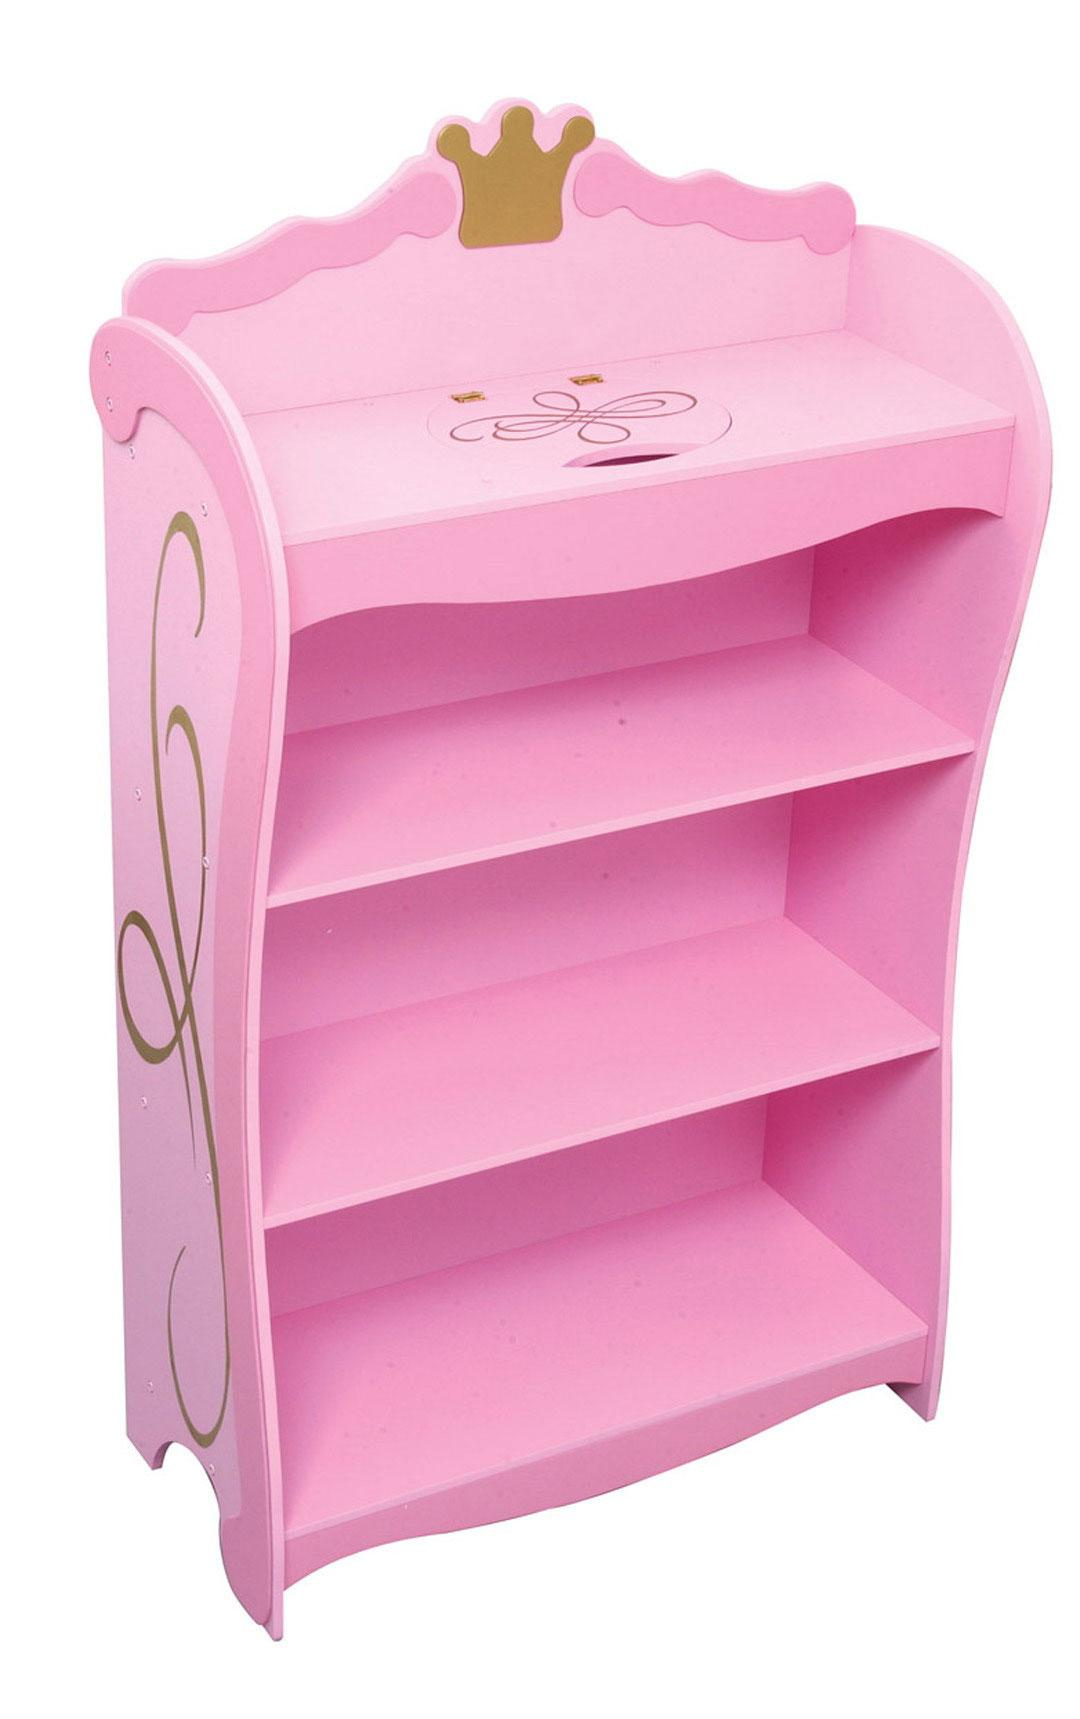 amazon princess toddler fields rocking dolls fantasy bed teamson com design vanity magic garden bookshelf frog